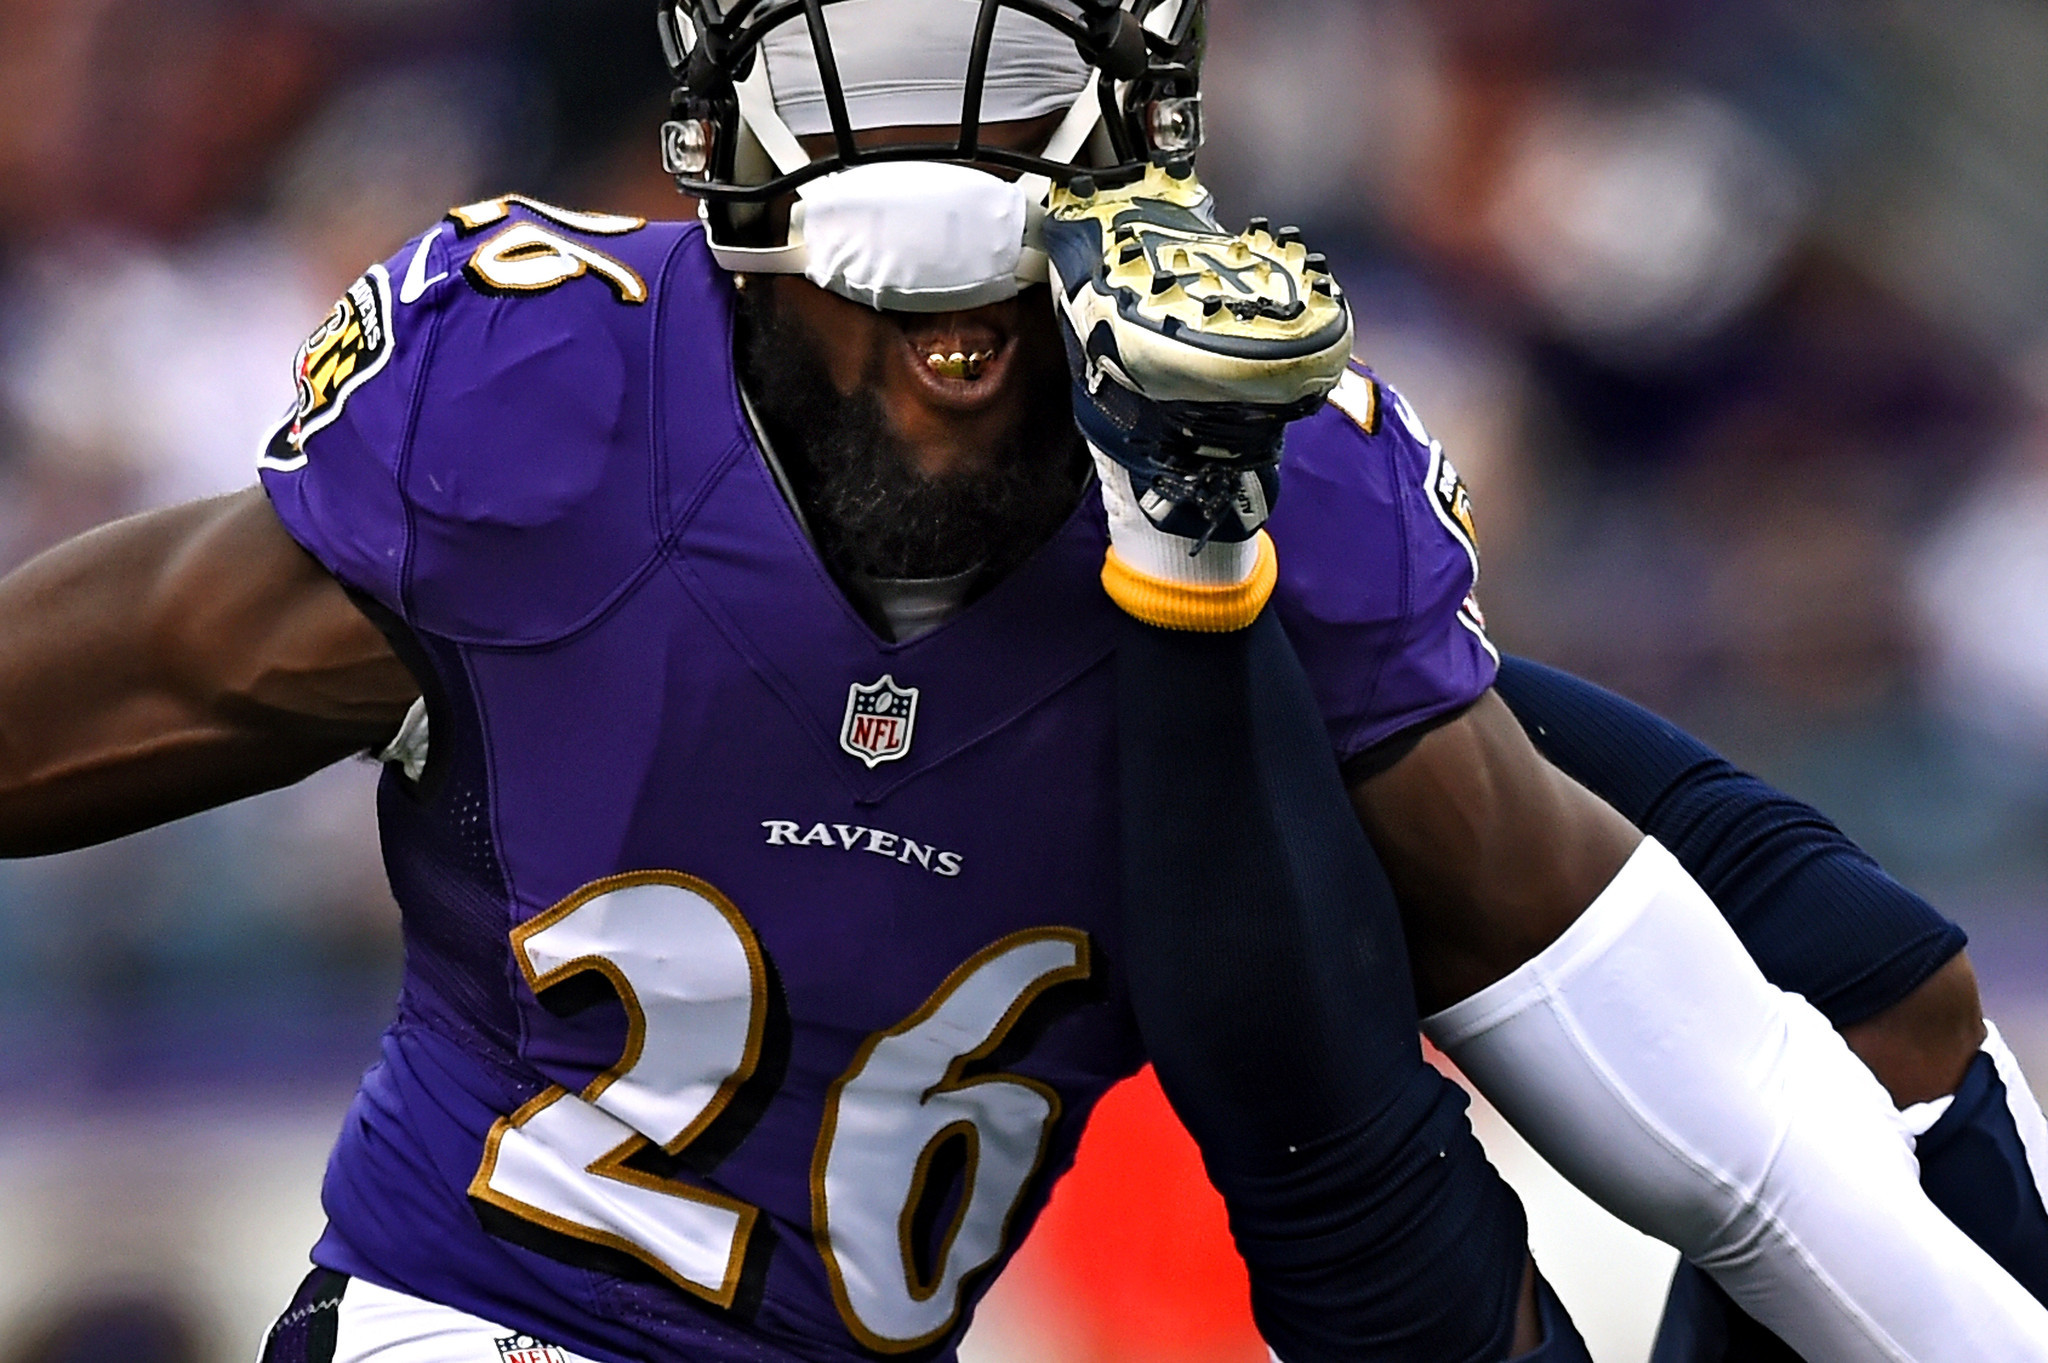 Ravens news notes and opinions on Matt Elam pass rushers and